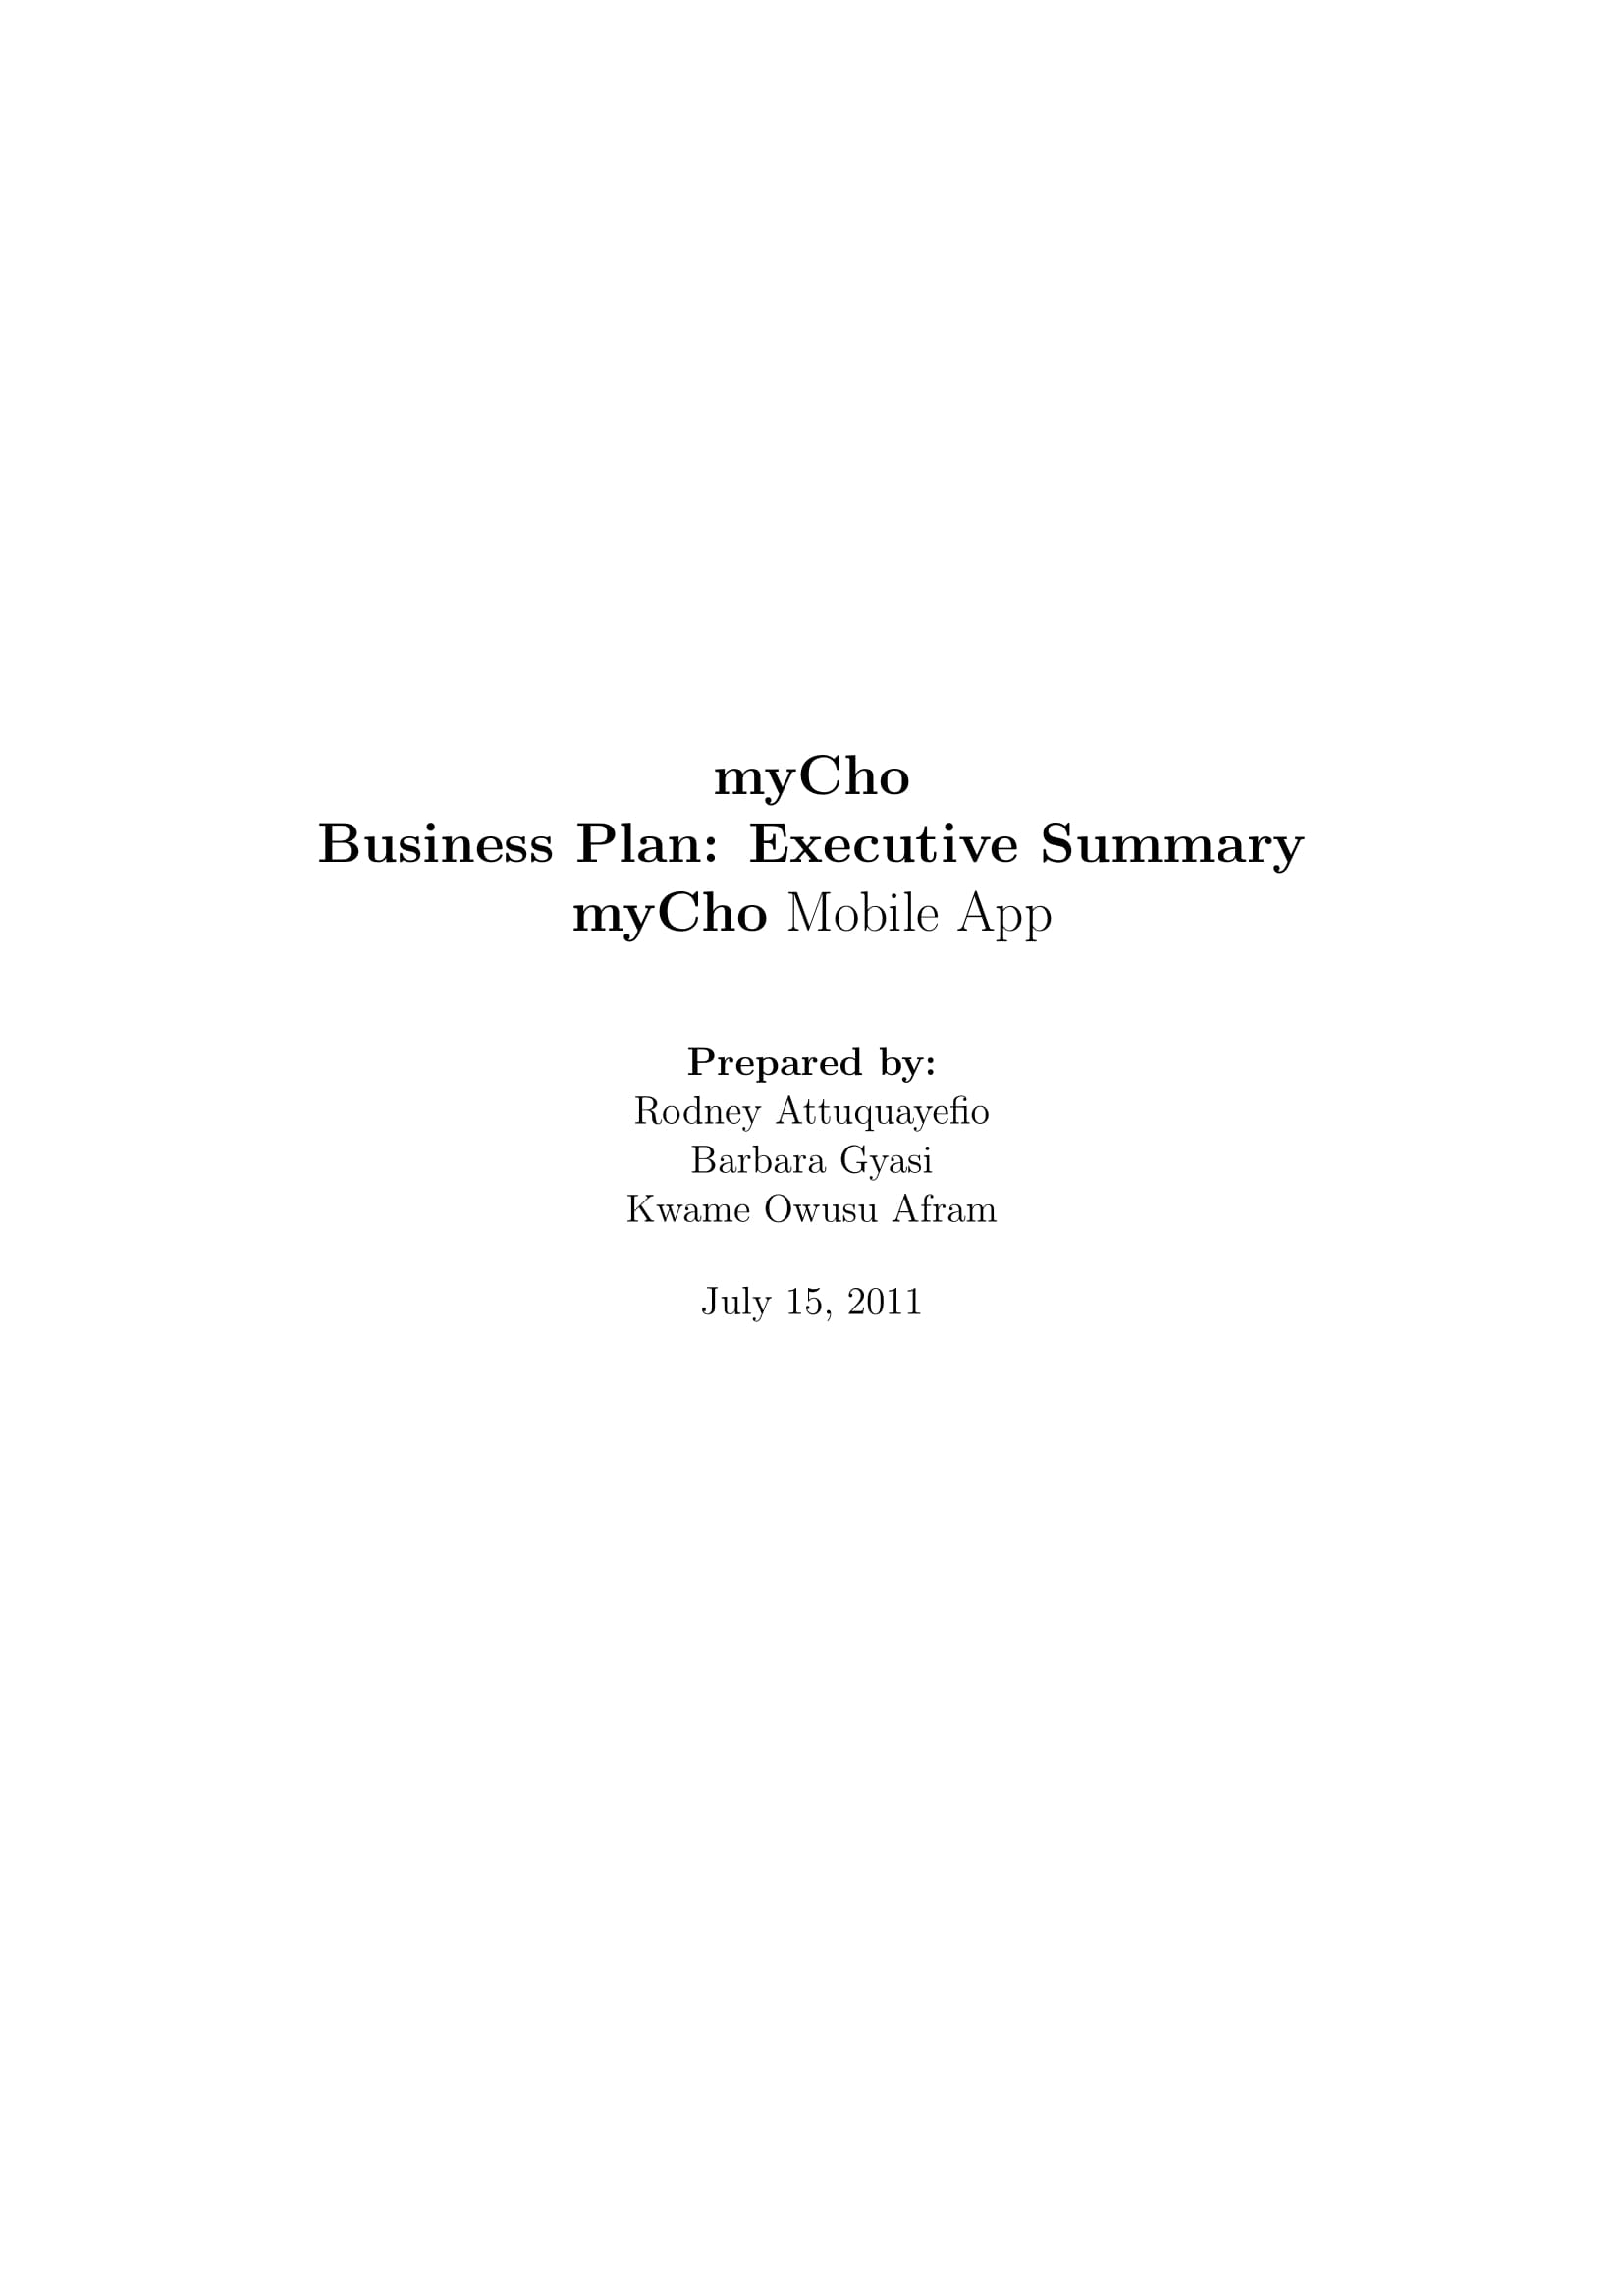 mobile app business plan executive summary example